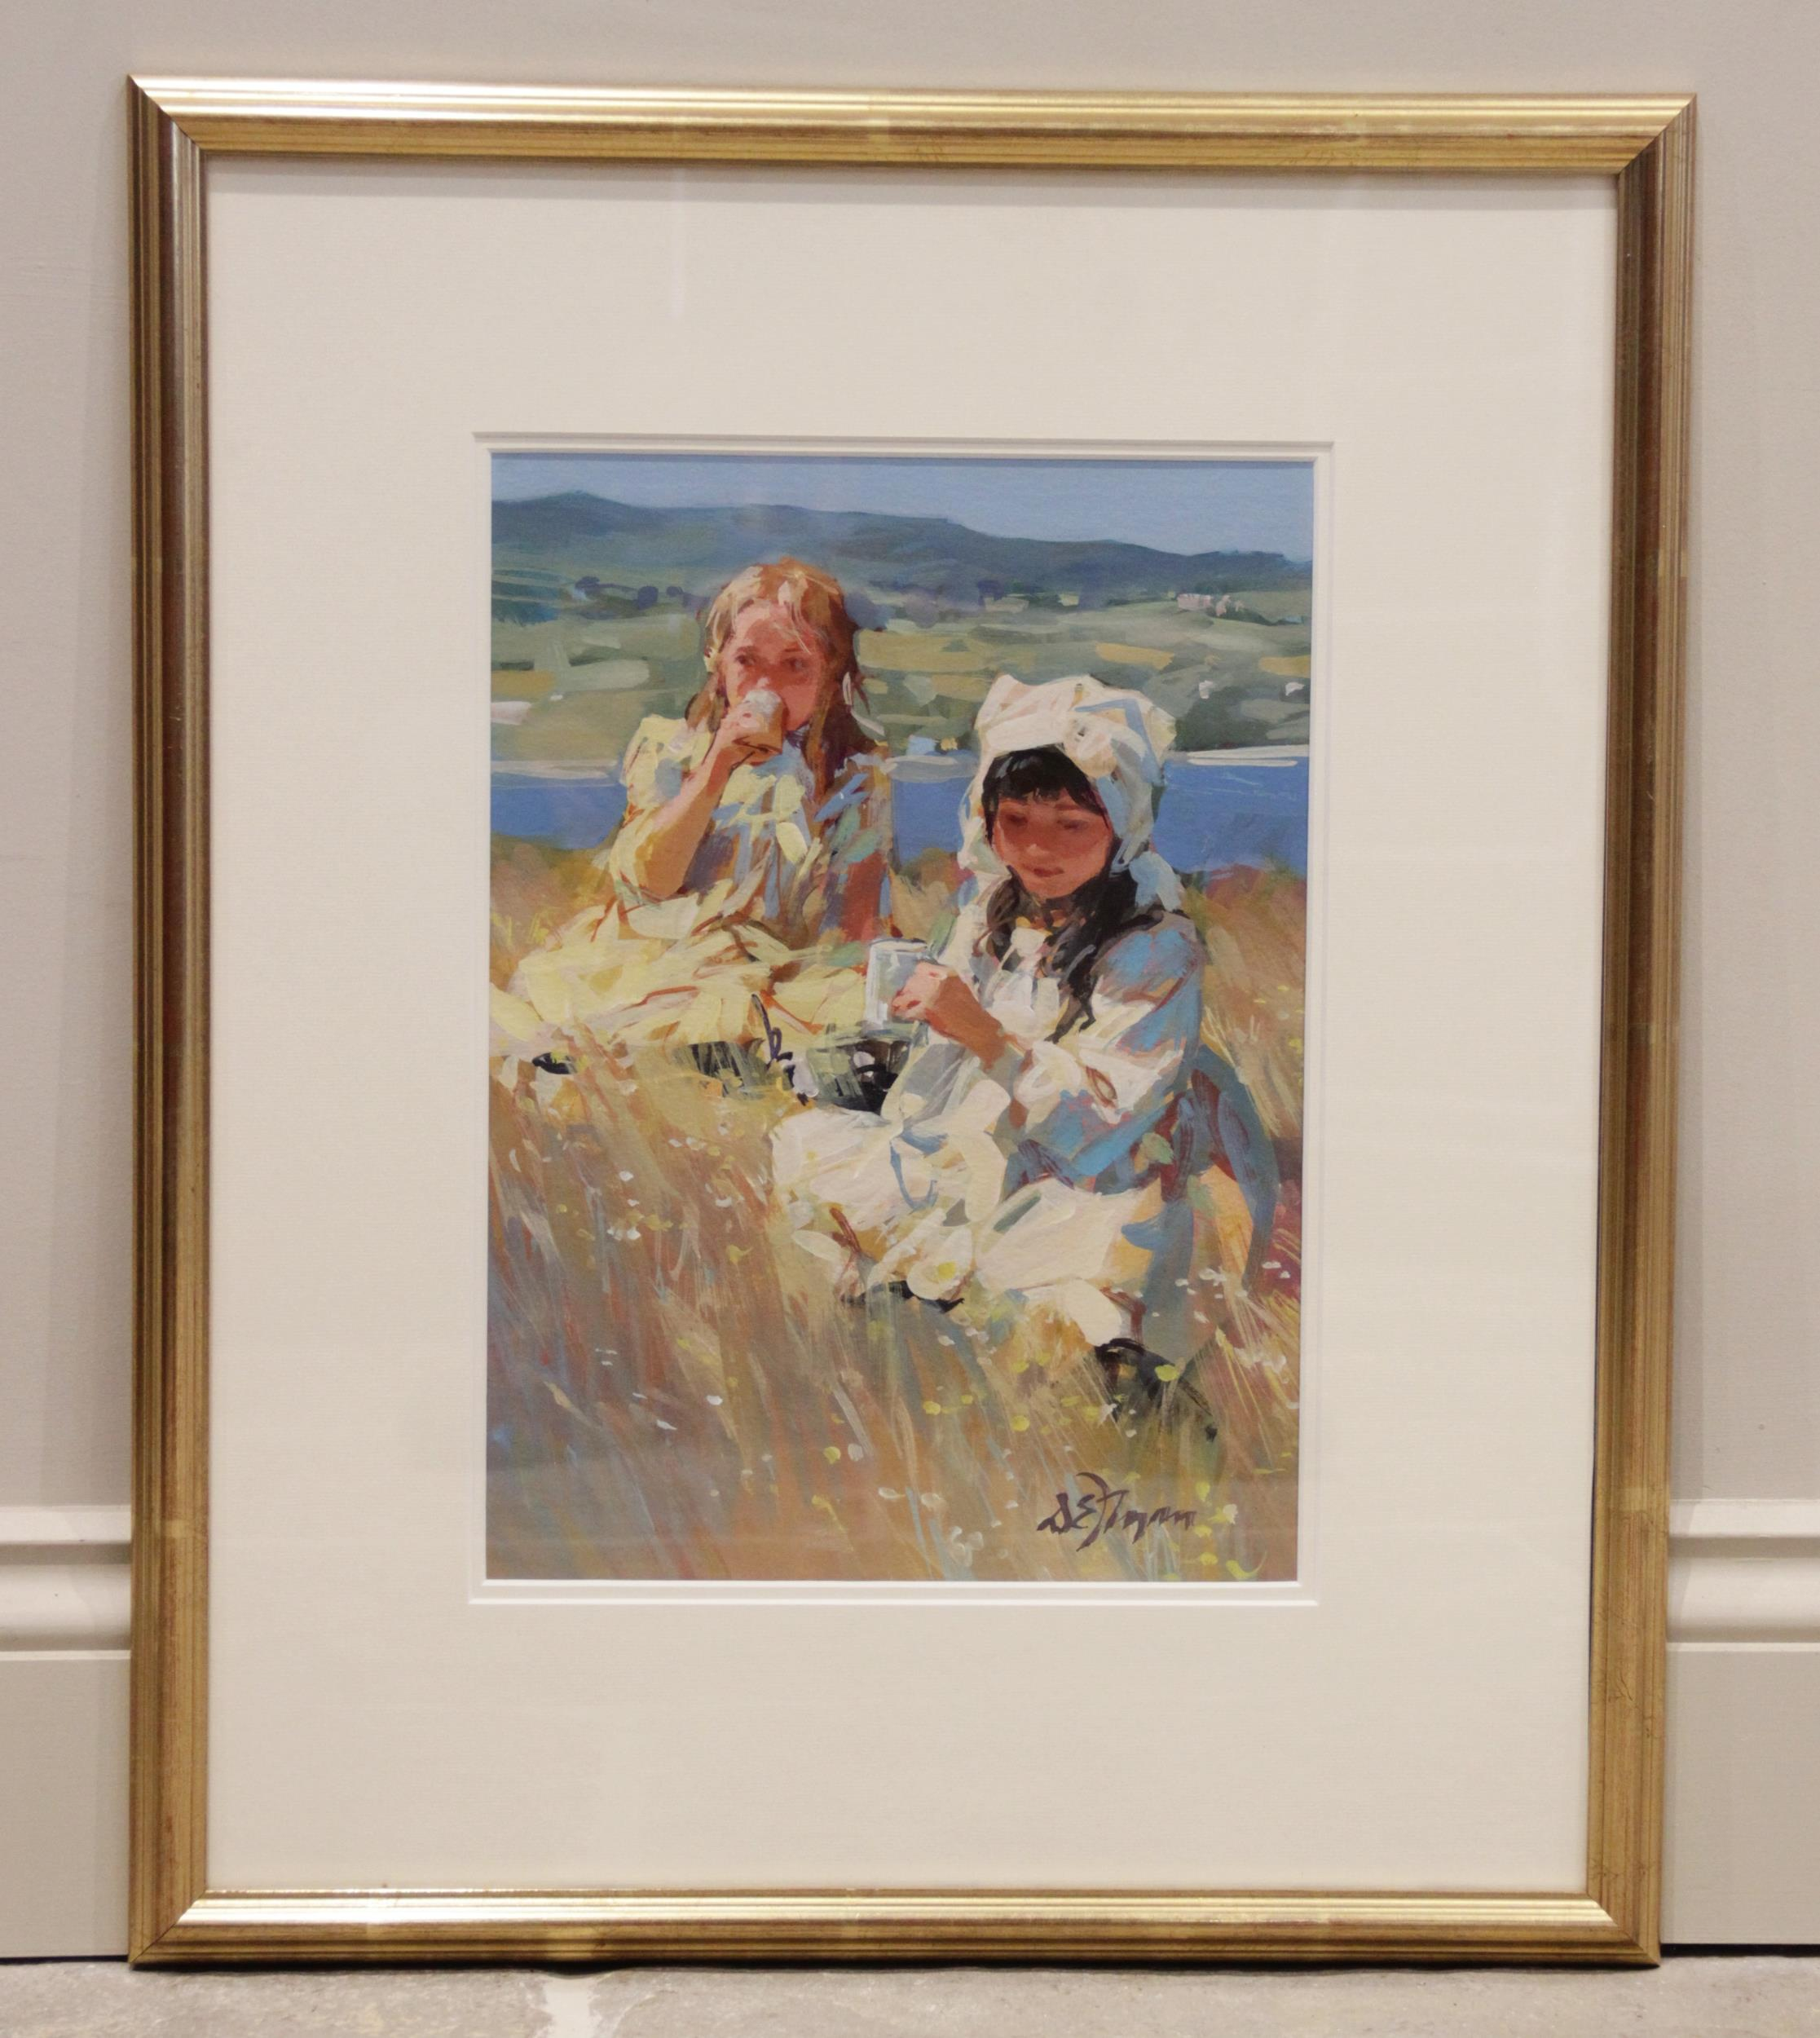 Dianne E. Flynn (British, b.1939), A two girls on a hilltop, Gouache on paper, Signed lower right, - Image 2 of 4